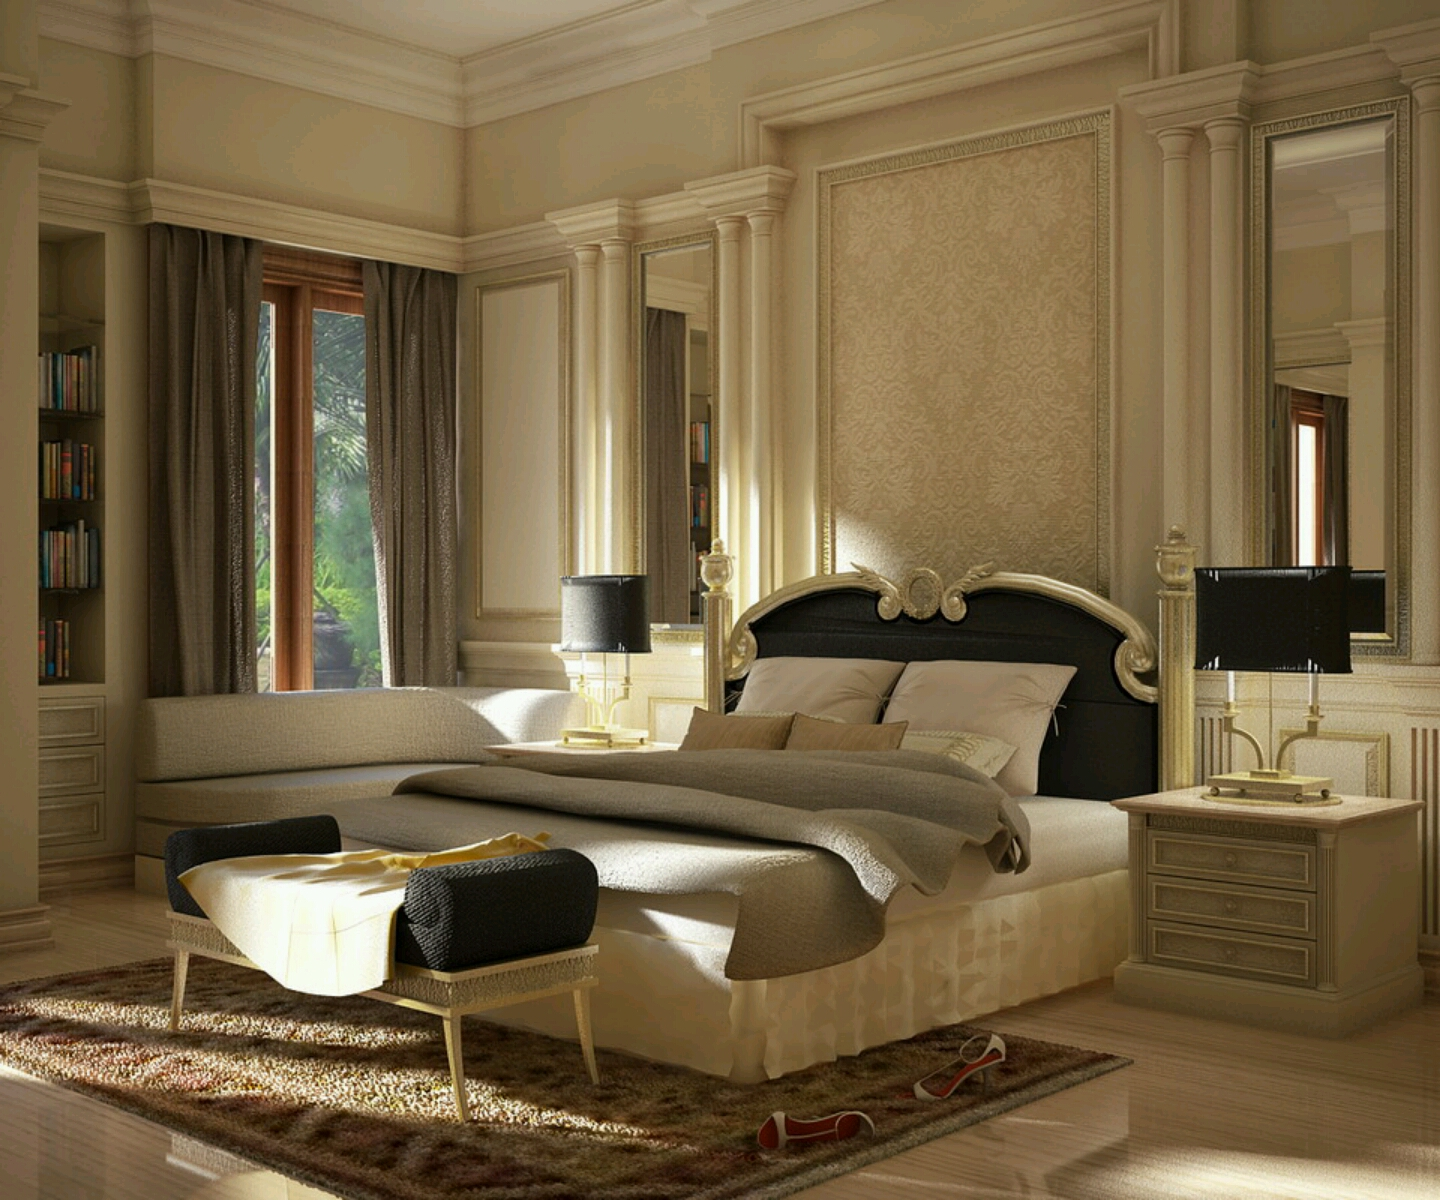 Modern luxury bedroom furniture designs ideas vintage for Master bed design images